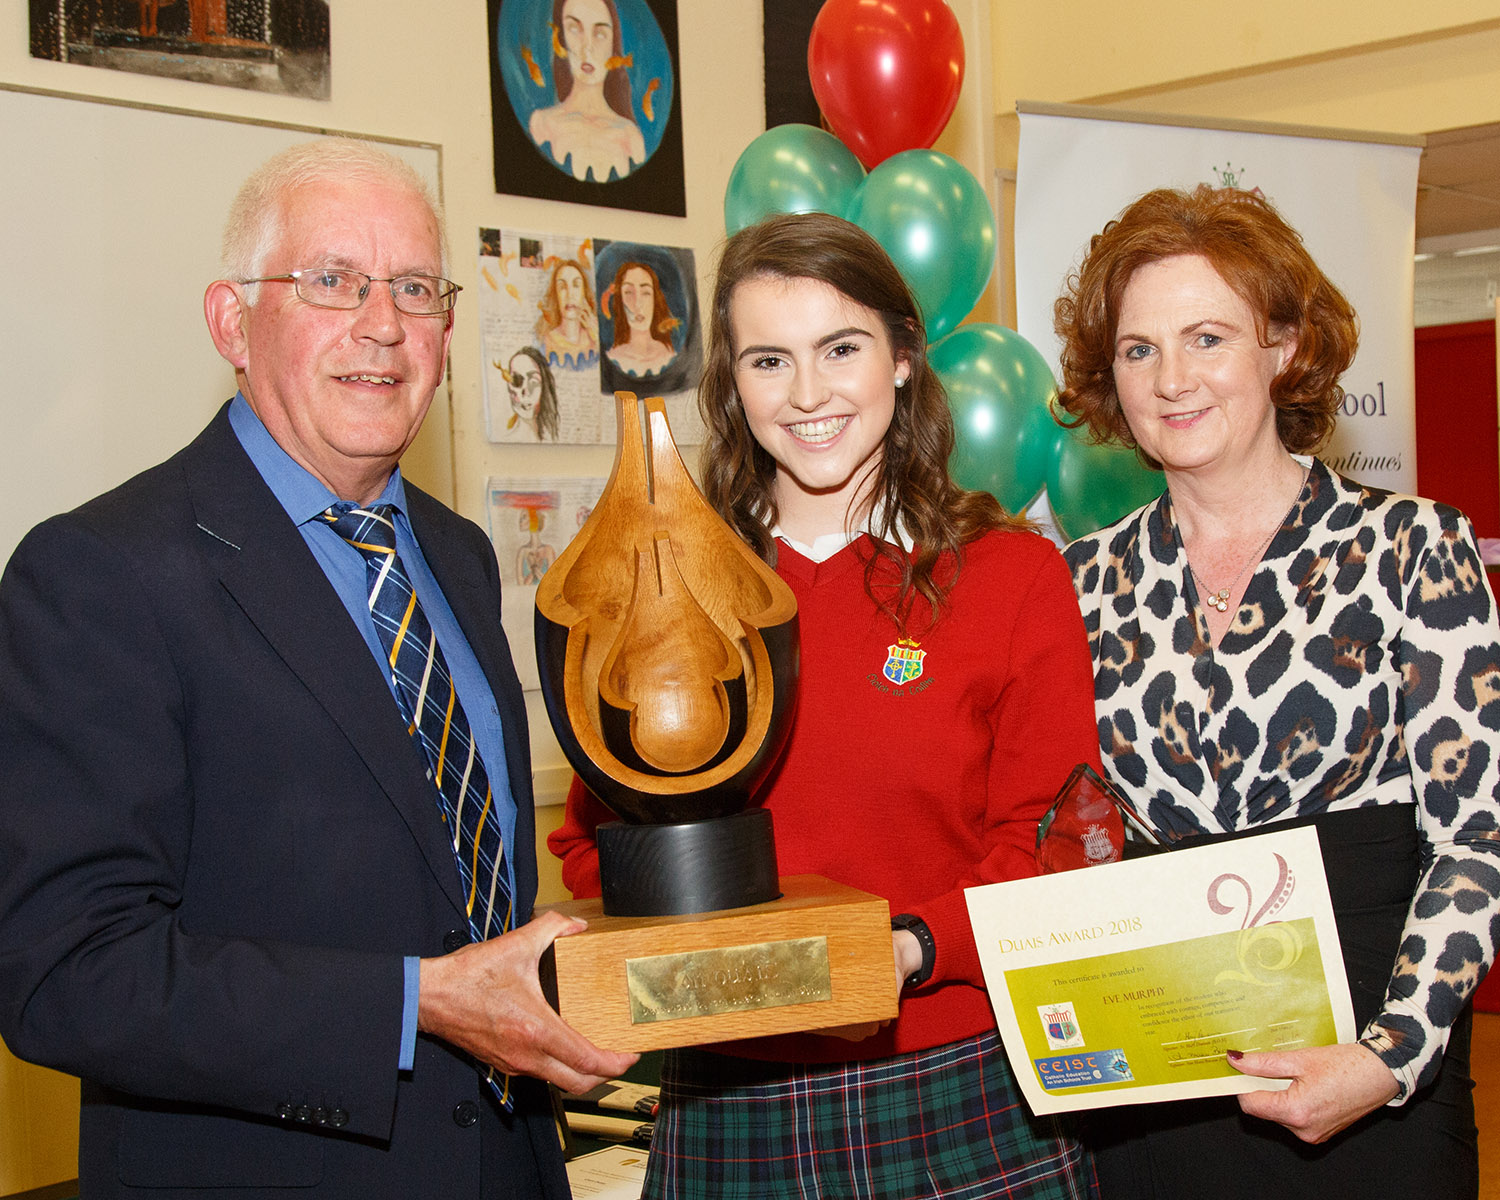 Recipient of the Transition Year An Duais award Eve Murphy pictured with Liam Nash and Ann Marie Brosnan